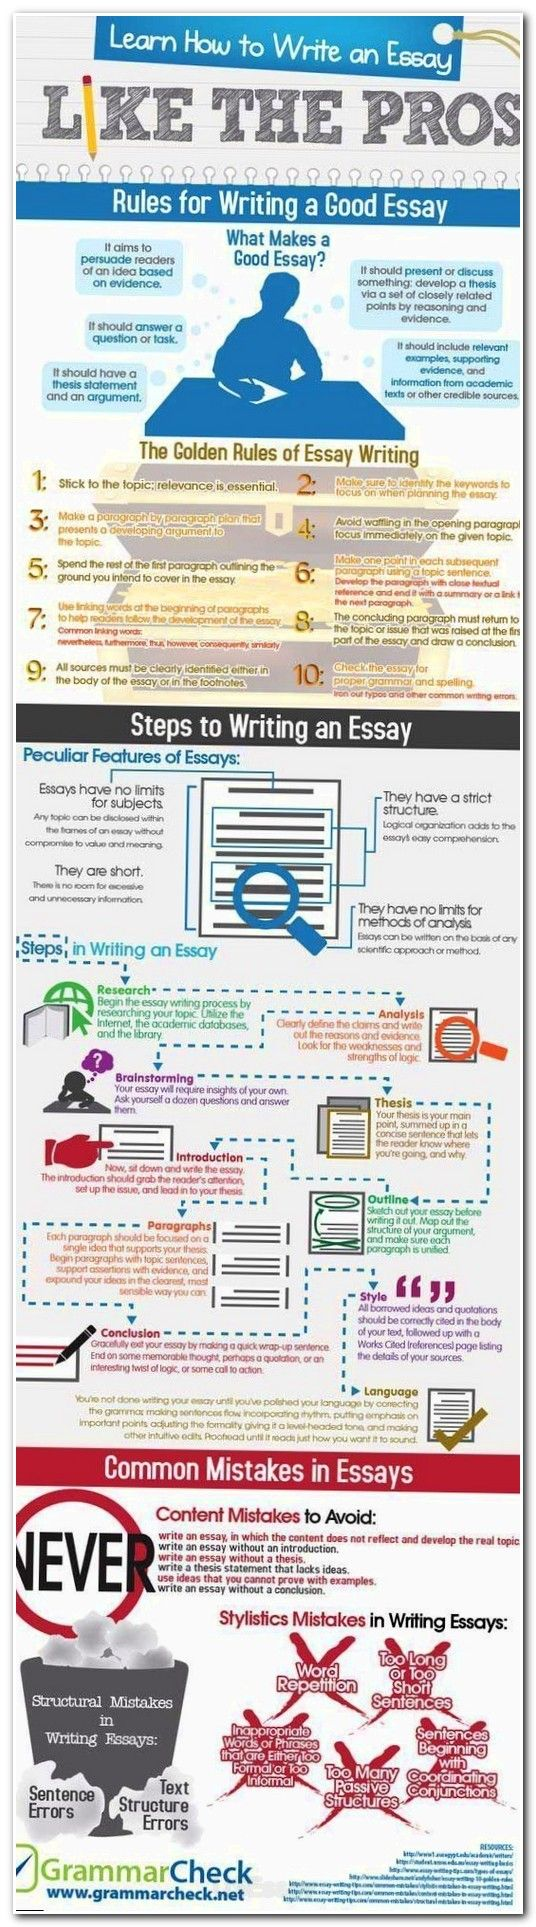 #essay #wrightessay contrast comparison essay, writing prompts fourth grade, how to develop a thesis topic, good compare contrast essay topics, proposal writing sample, accounting essay writing, assignment help tutors, thesis service, how to write process analysis essay, how can i write an essay, macbeth act 1 essay, scholarship sample, how to write an article analysis essay, reword my paragraph generator, history dissertation help